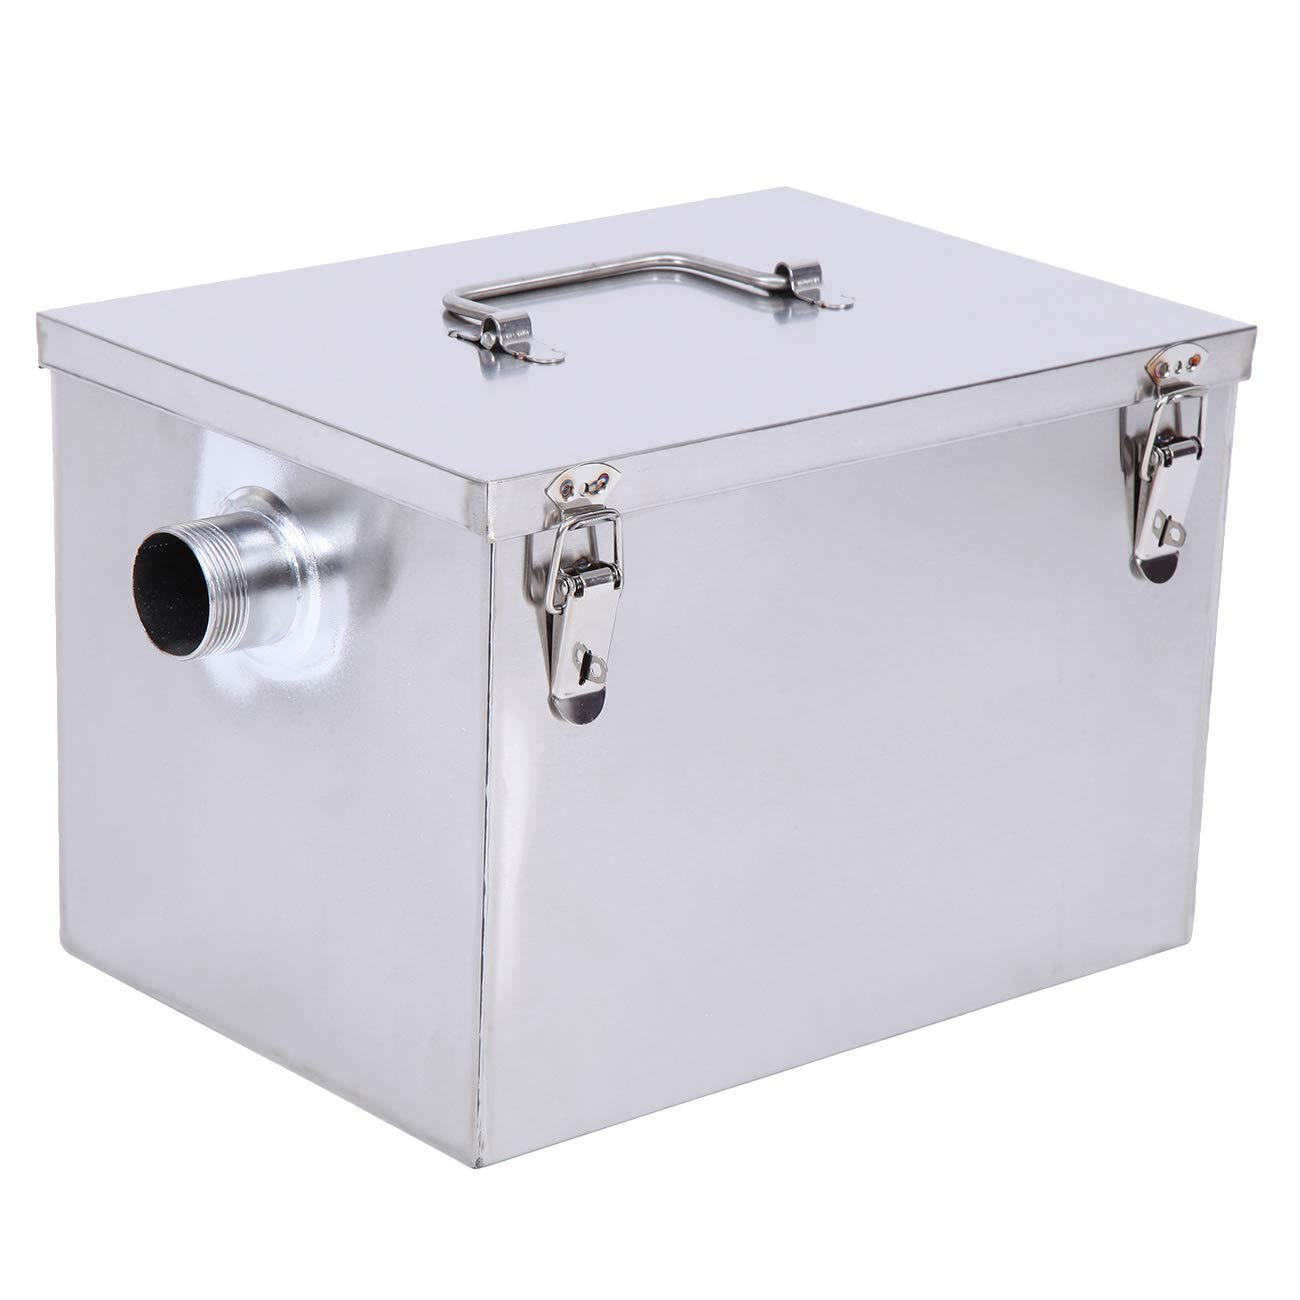 XuanYue Commercial Grease Trap 8 LB 5 GPM Gallon per Minute Stainless Steel Grease Interceptor Kitchen Kit for Restaurant Factory and Home